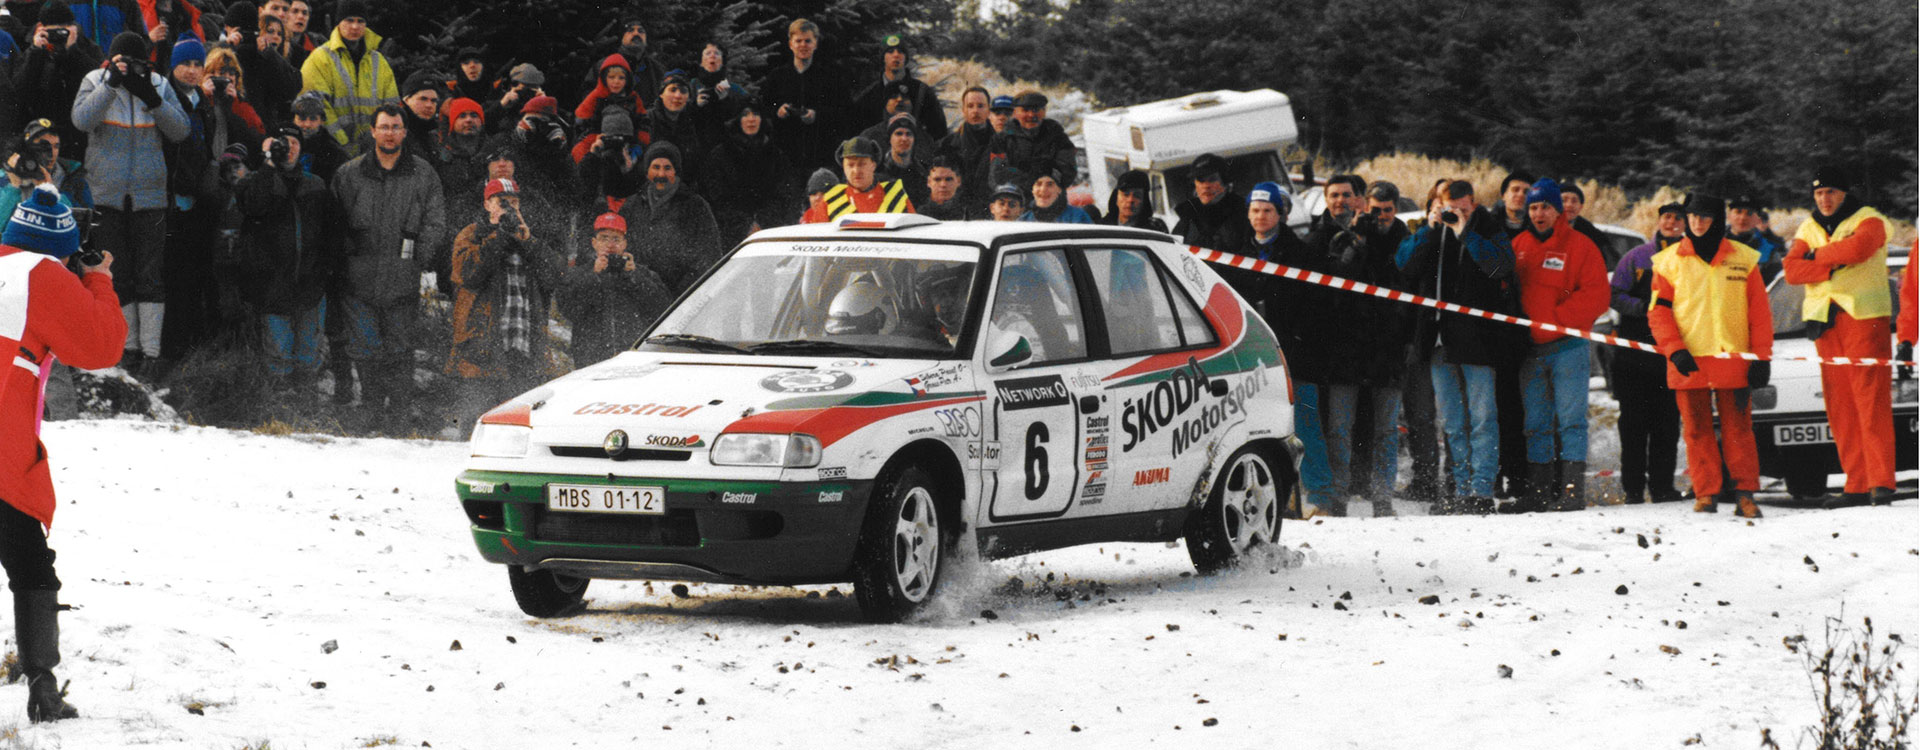 From the Archives: Stig Blomqvist in a ŠKODA Felicia Kit Car hit podium at the RAC Rally 1996